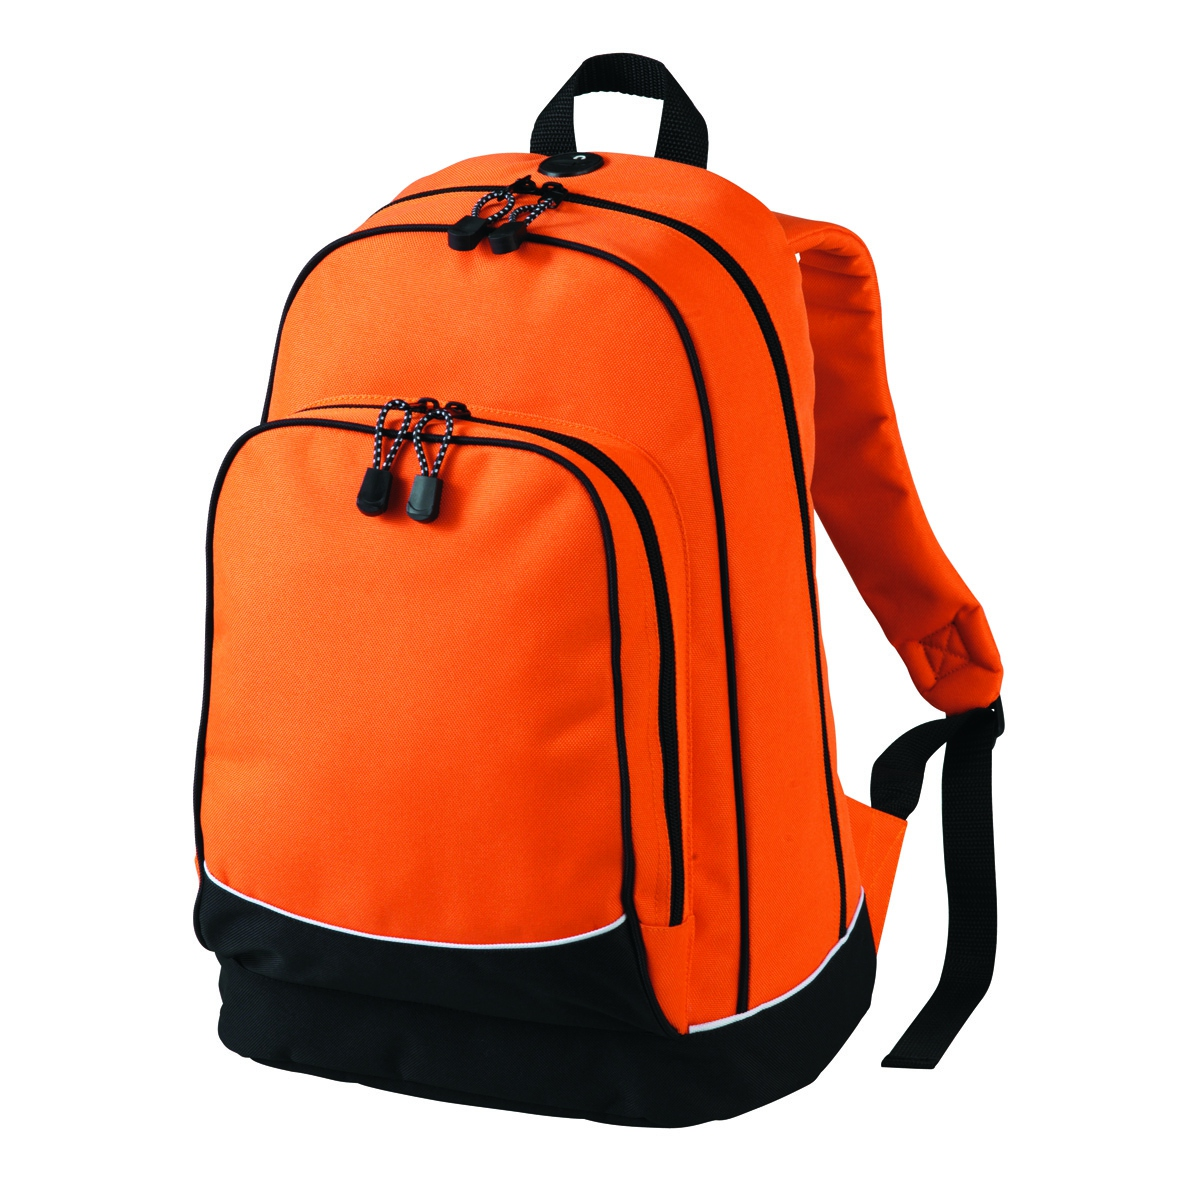 Sac à dos loisirs - CITY BACKPACK - 1803310 - orange